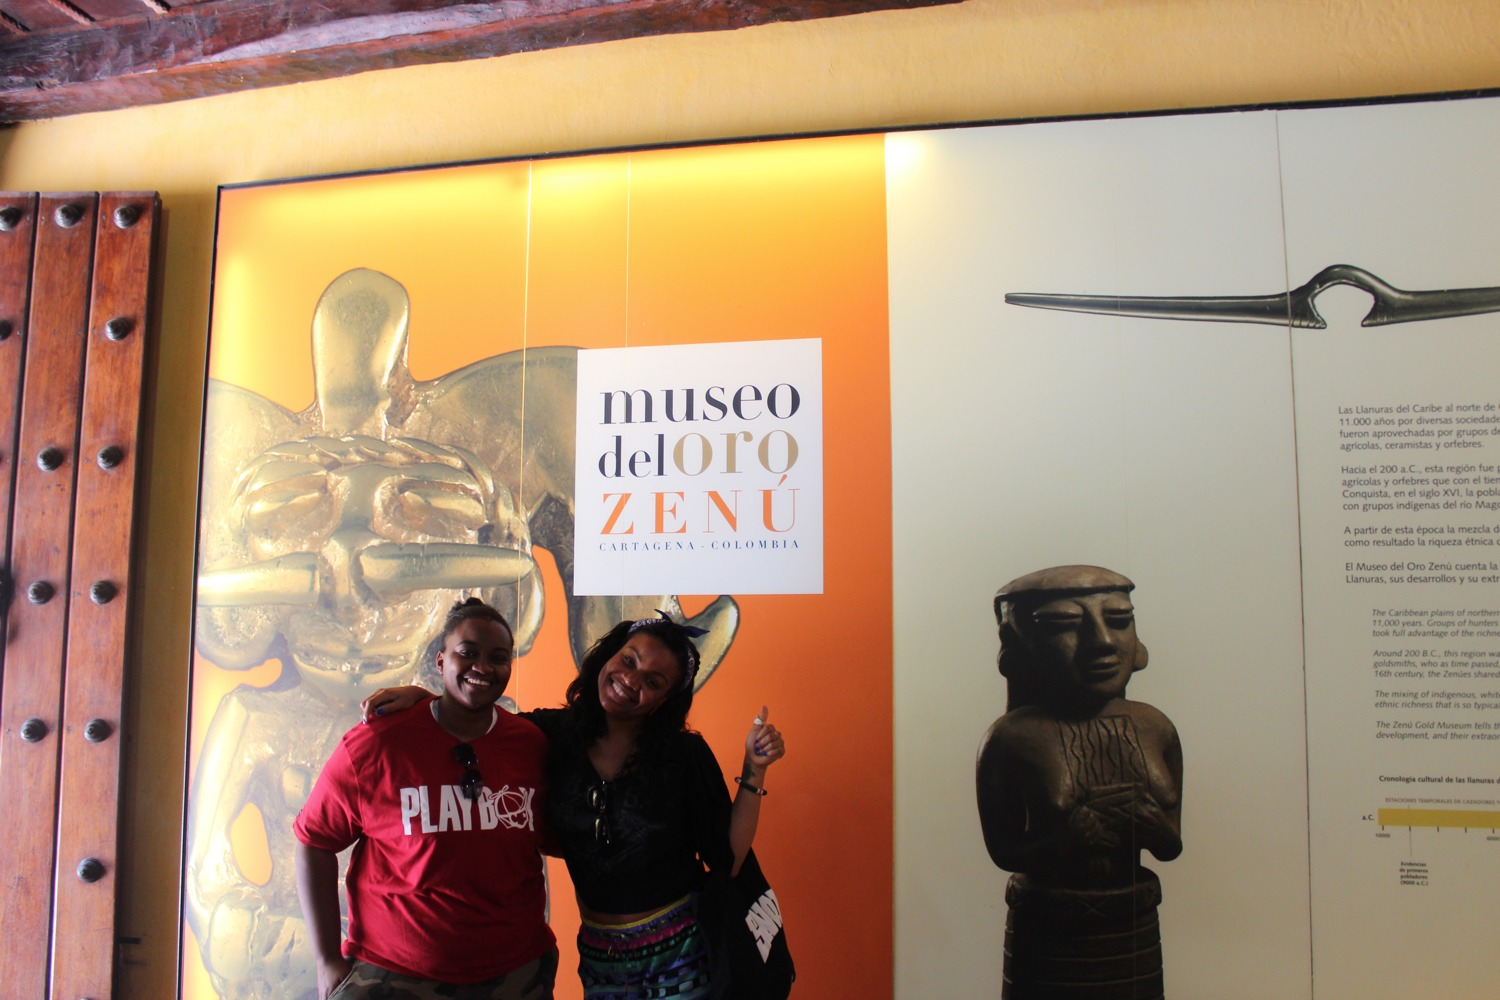 Museum hopping in Cartagena, Colombia